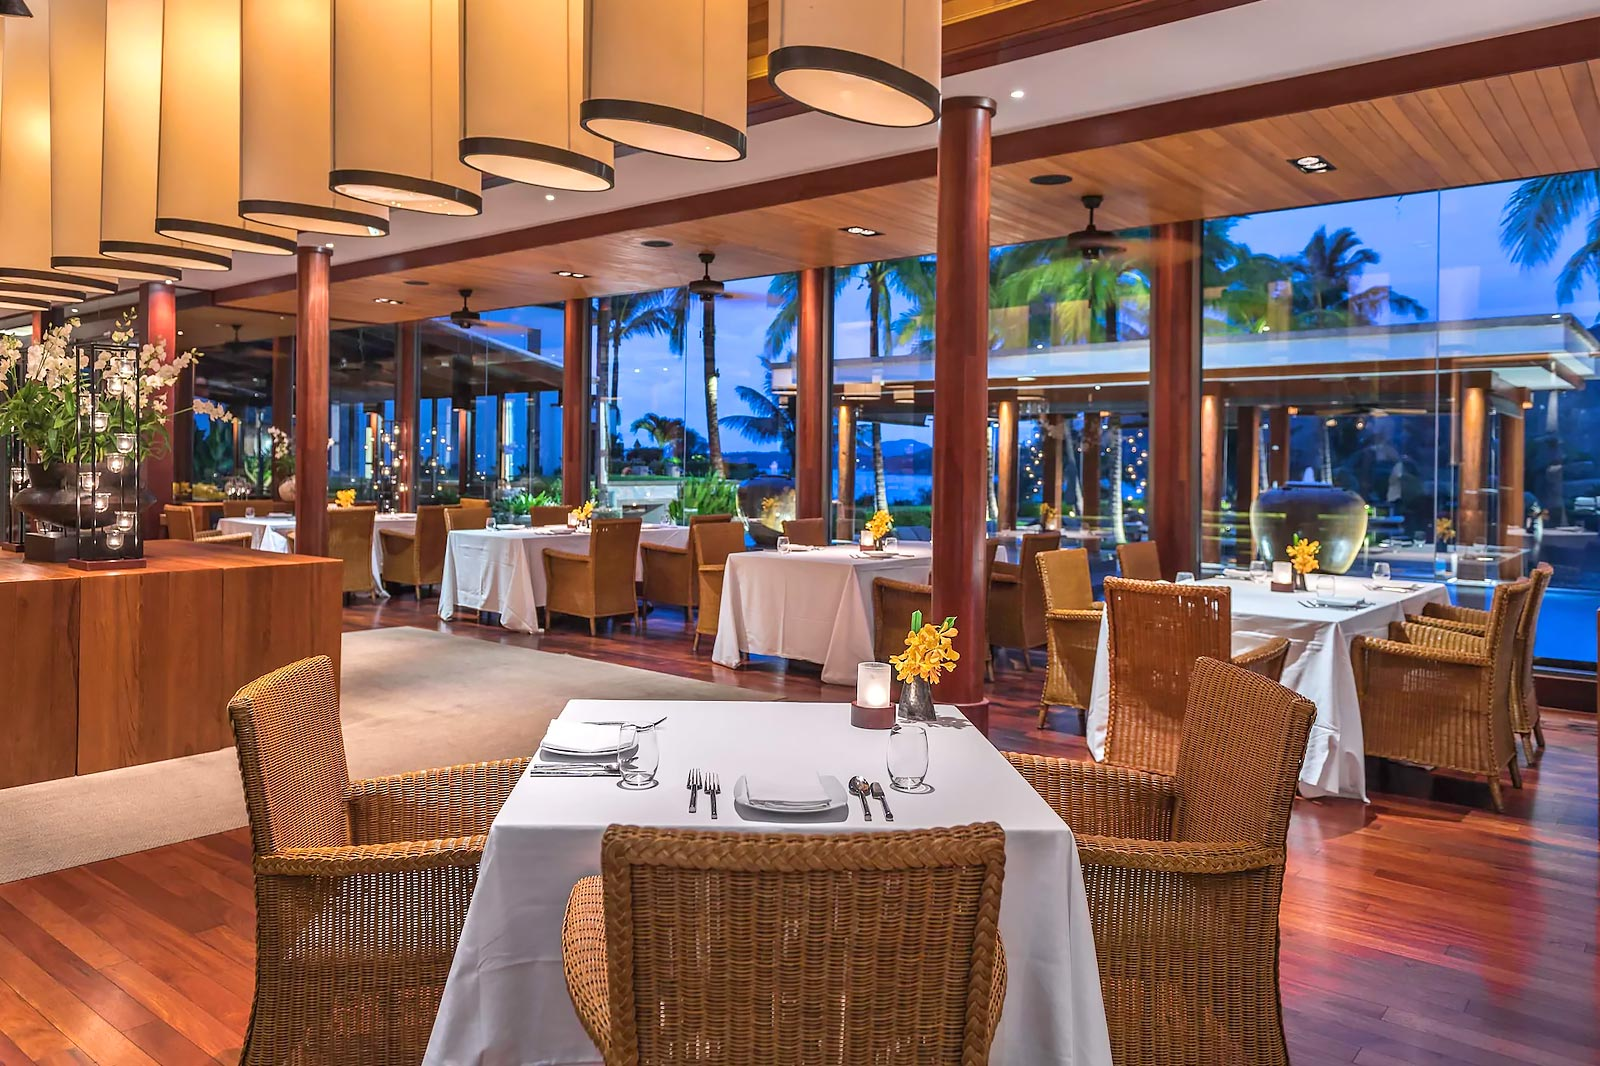 10 ways to go tropical for a relaxing and trendy home office.htm 10 best restaurants in kamala where to eat around kamala beach  where to eat around kamala beach